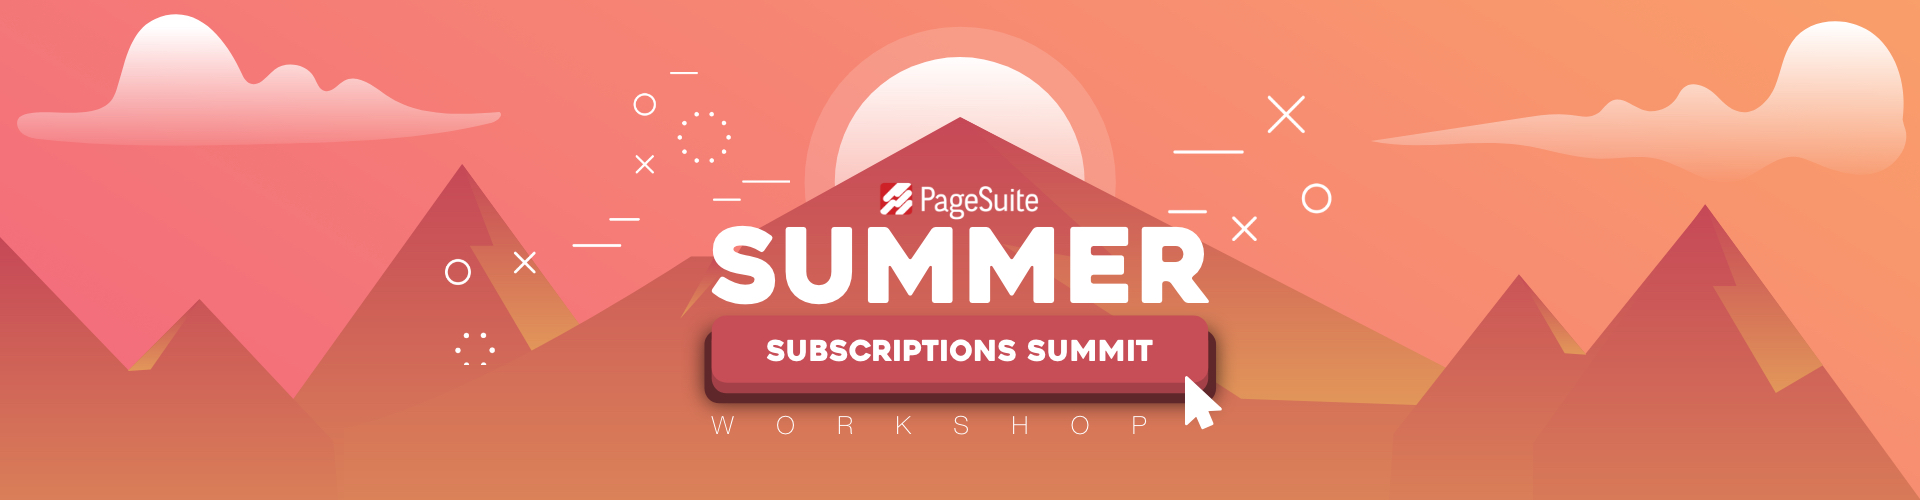 PageSuite's Summer Subscriptions Summit